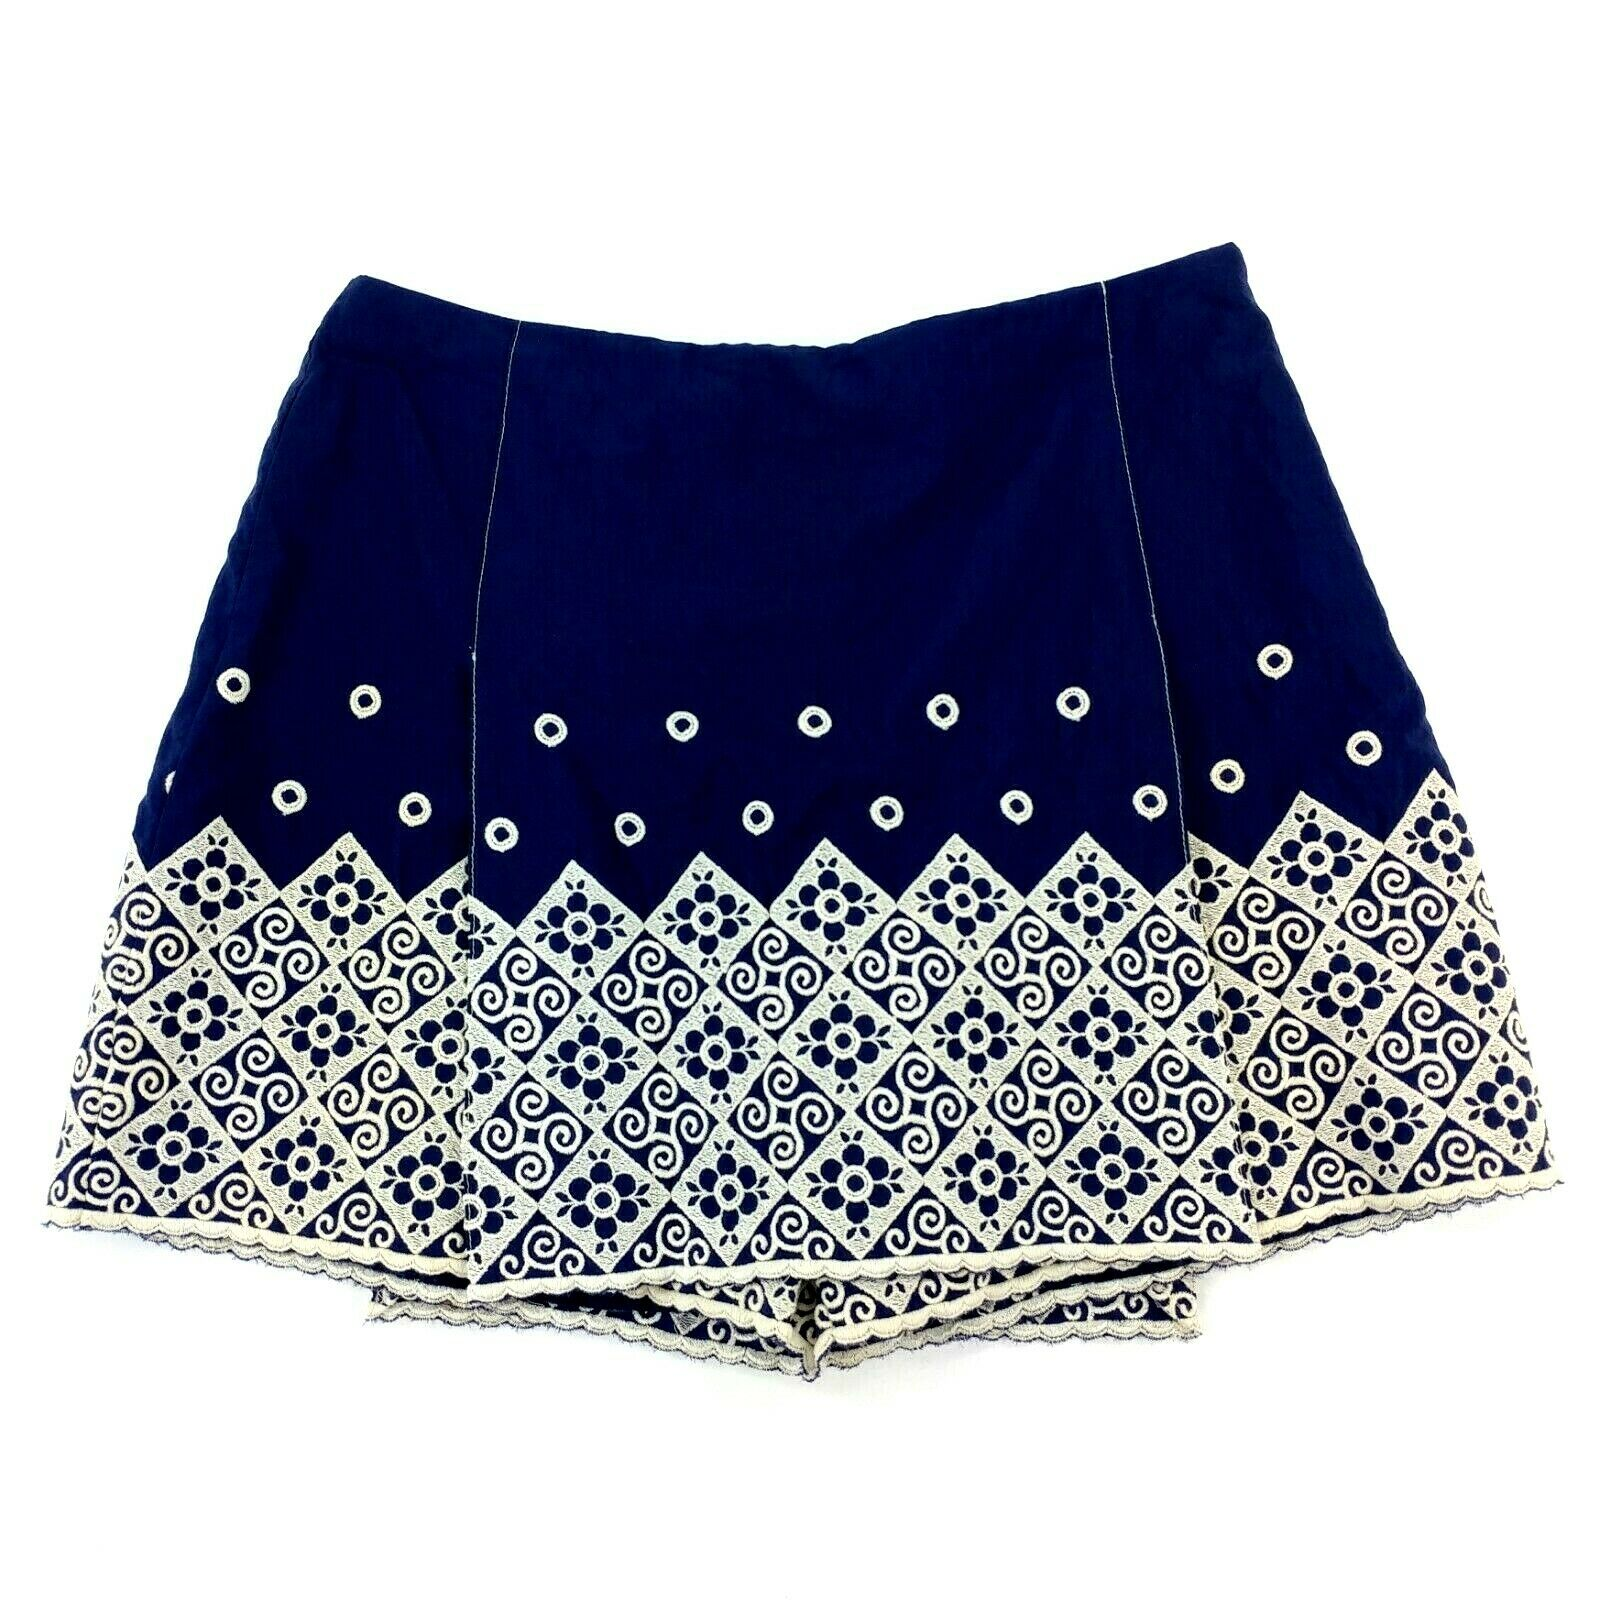 Anna Sui Womens Navy Nylon Ivory Embroidered Skort Shorts Size 6